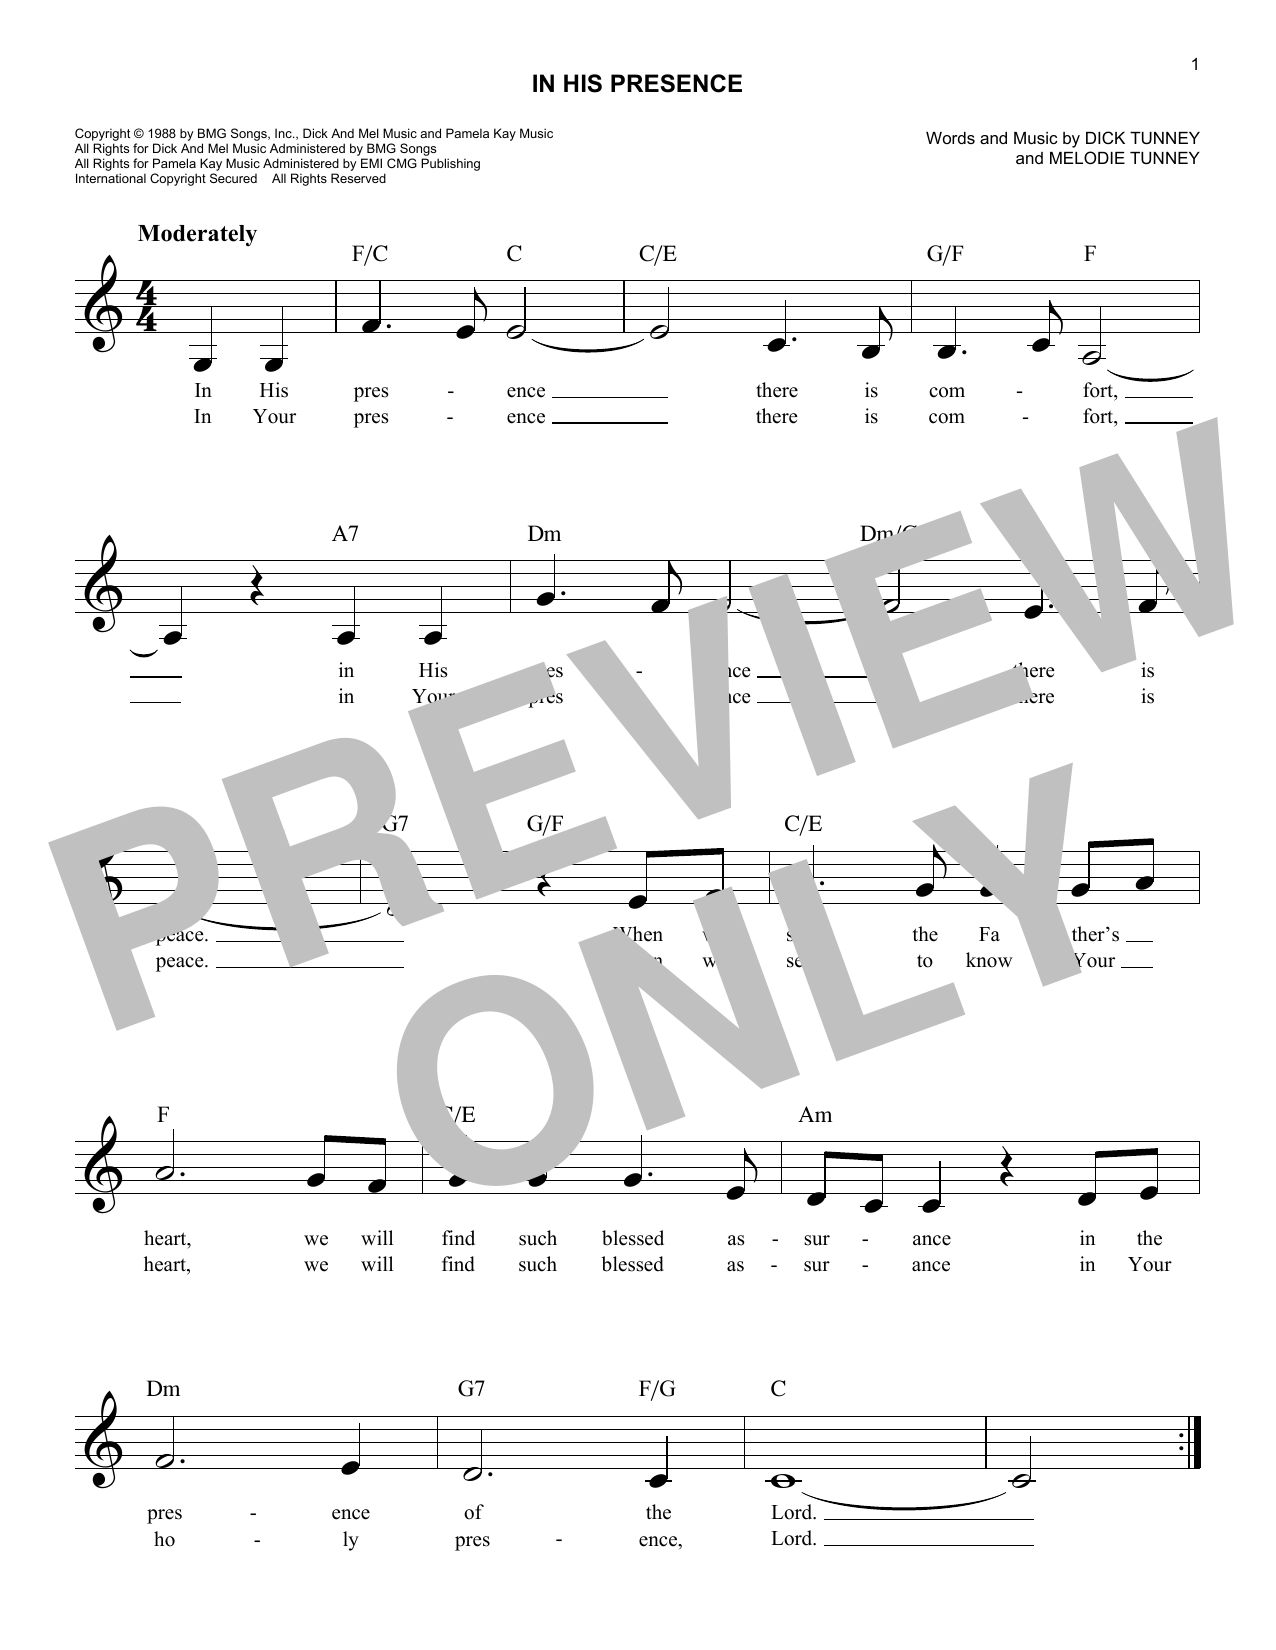 Melodie Tunney In His Presence sheet music notes and chords. Download Printable PDF.